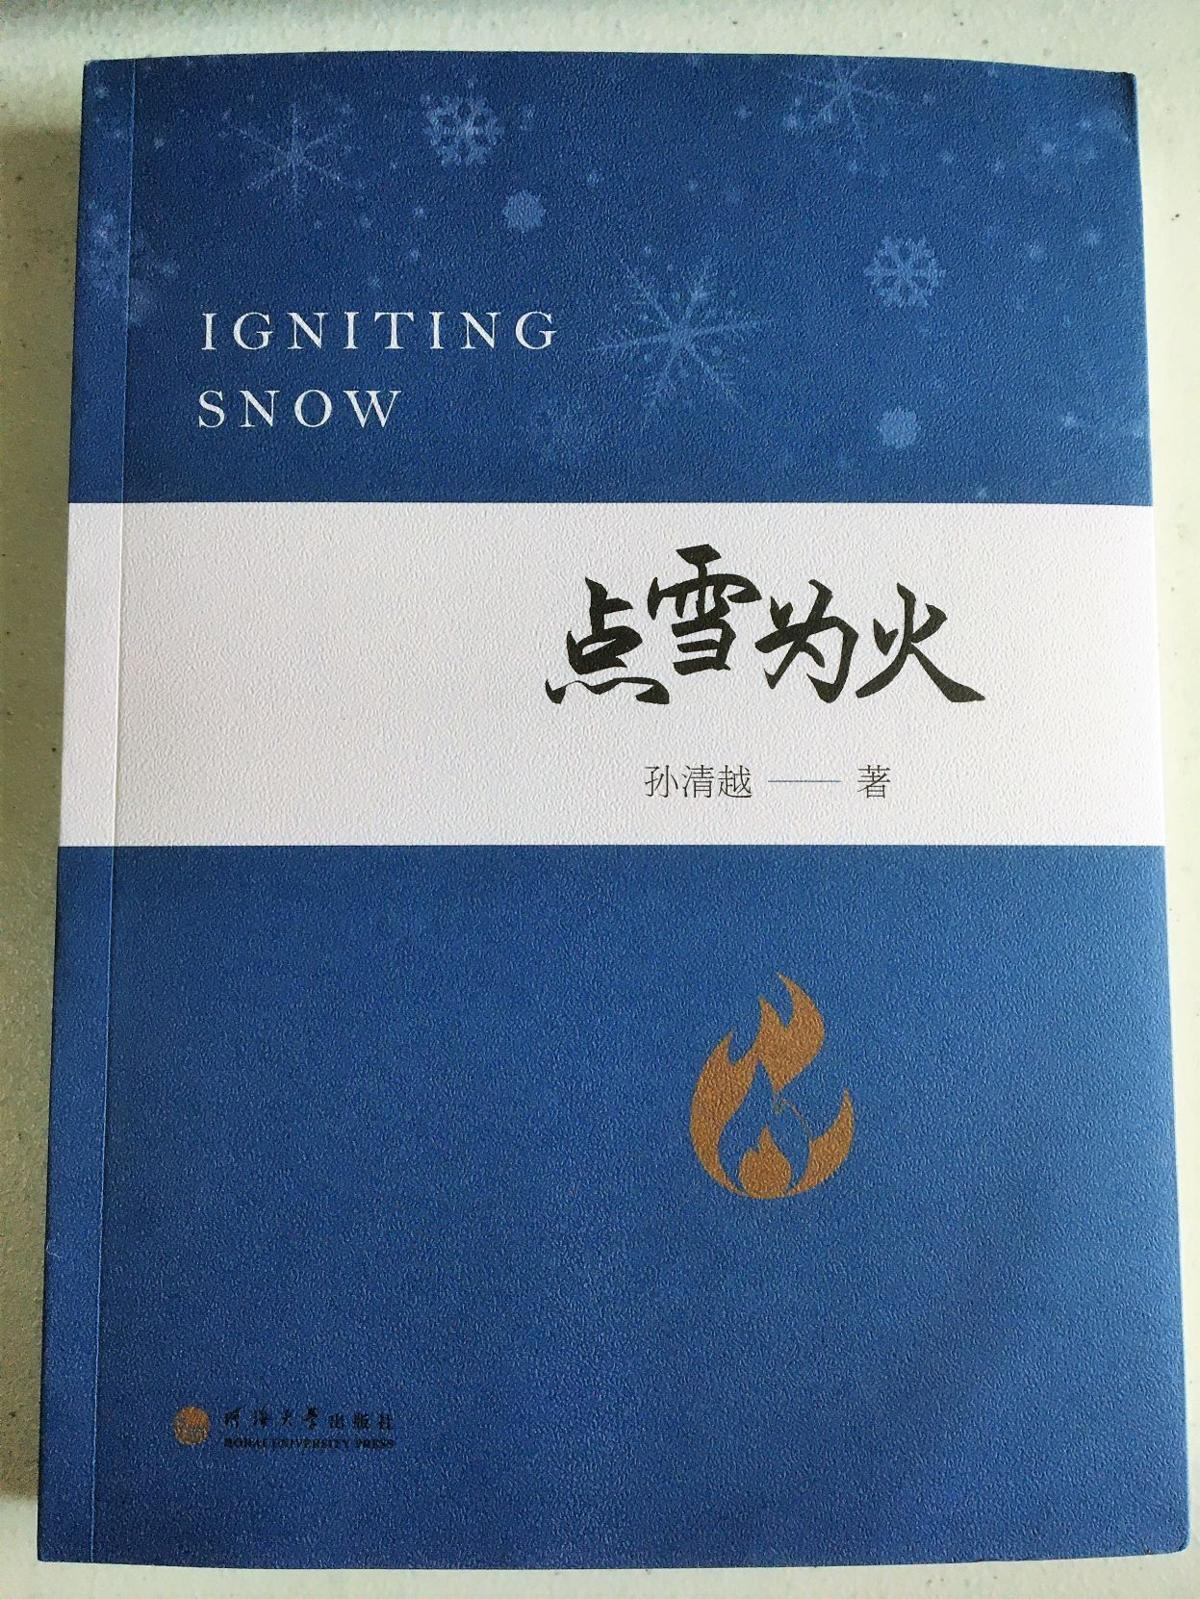 Igniting Snow